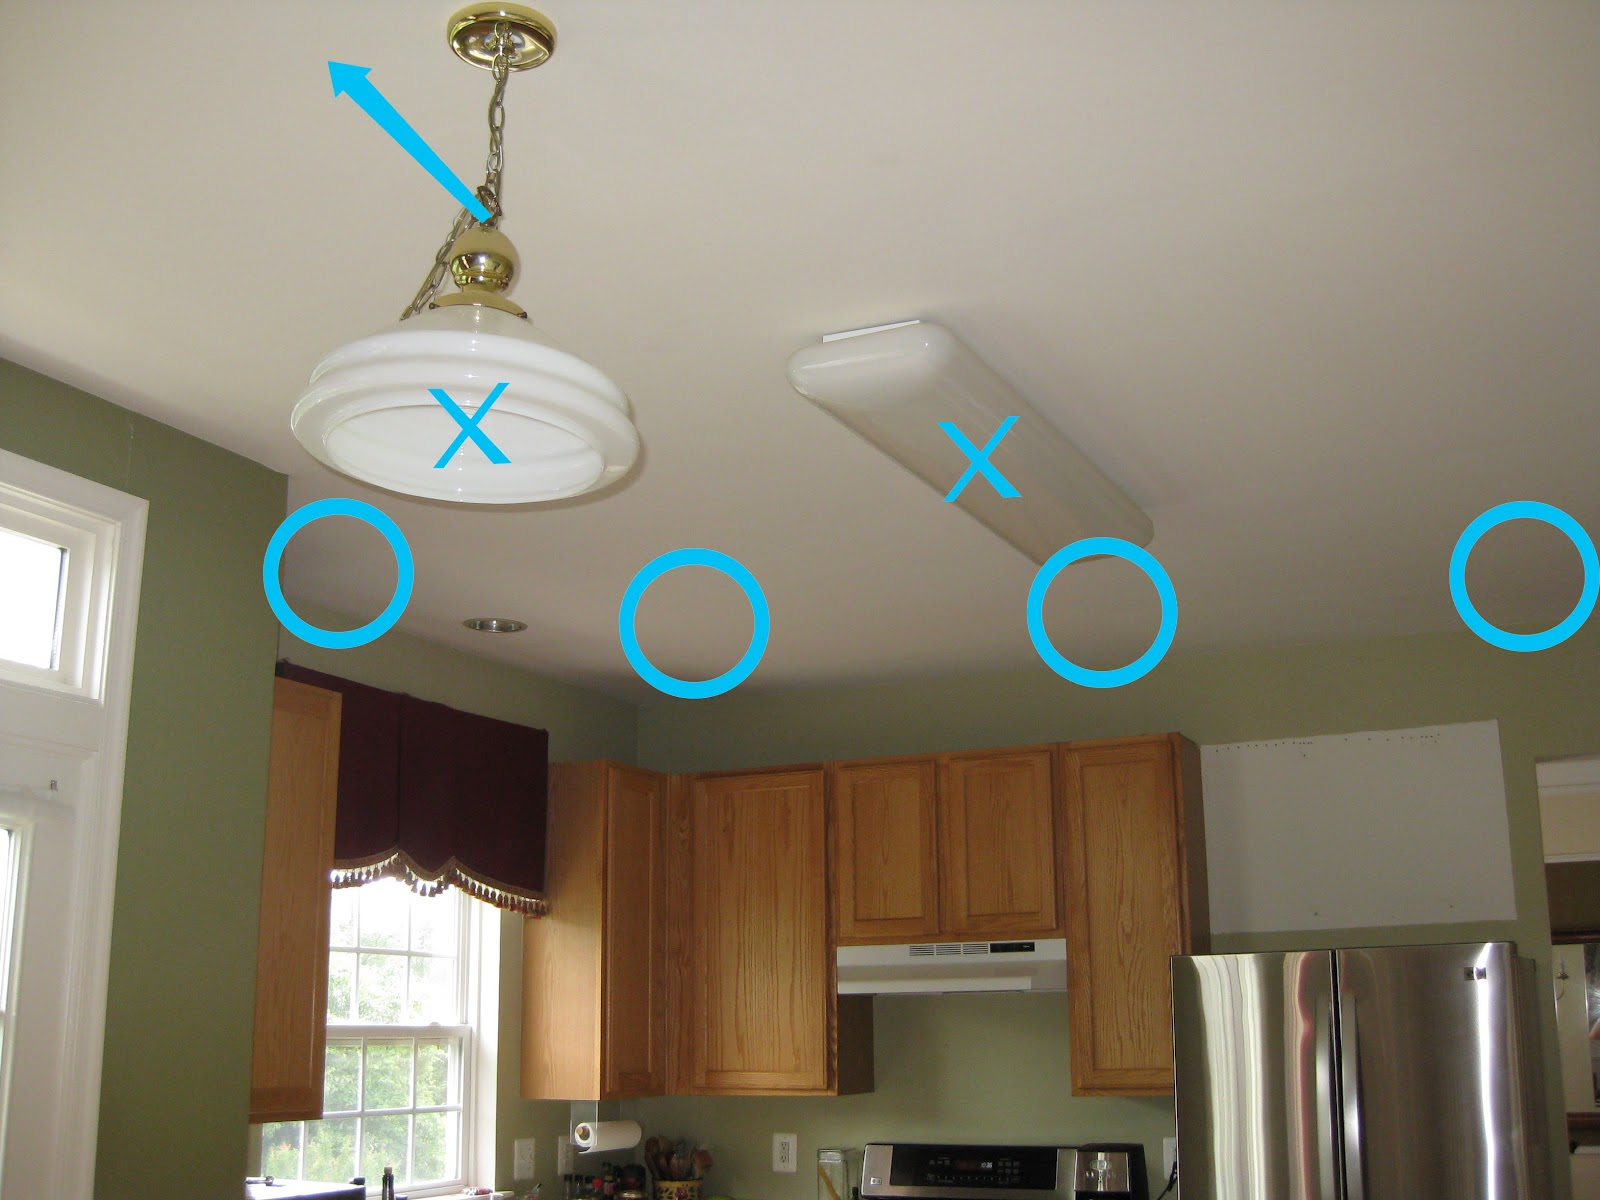 Thinking about installing recessed lights? - Remodelando la Casa